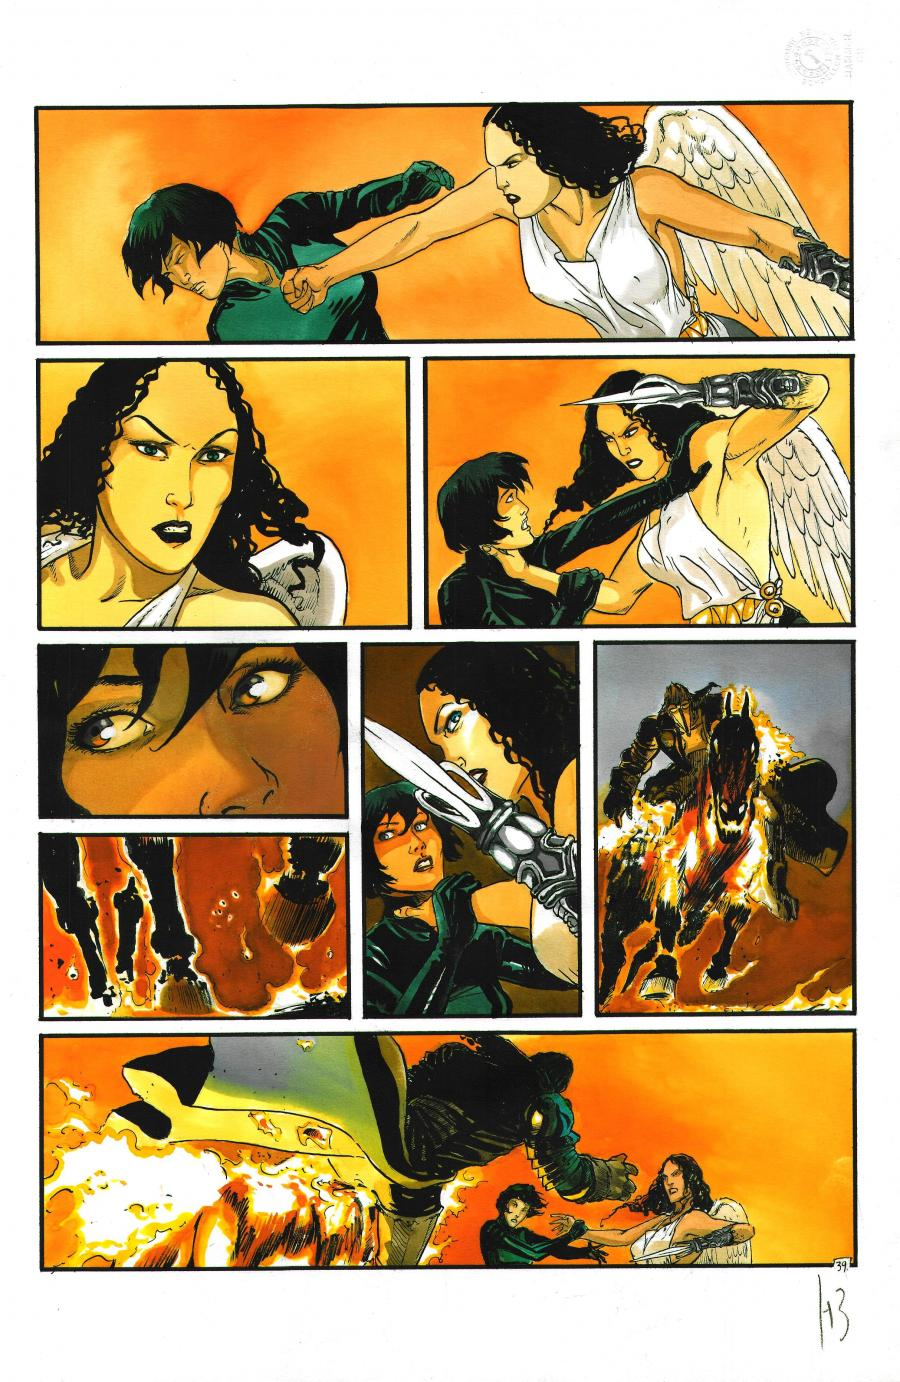 Original page 39 from Les Immortels Issue 4 - Le Second Cavalier by Henri Reculé